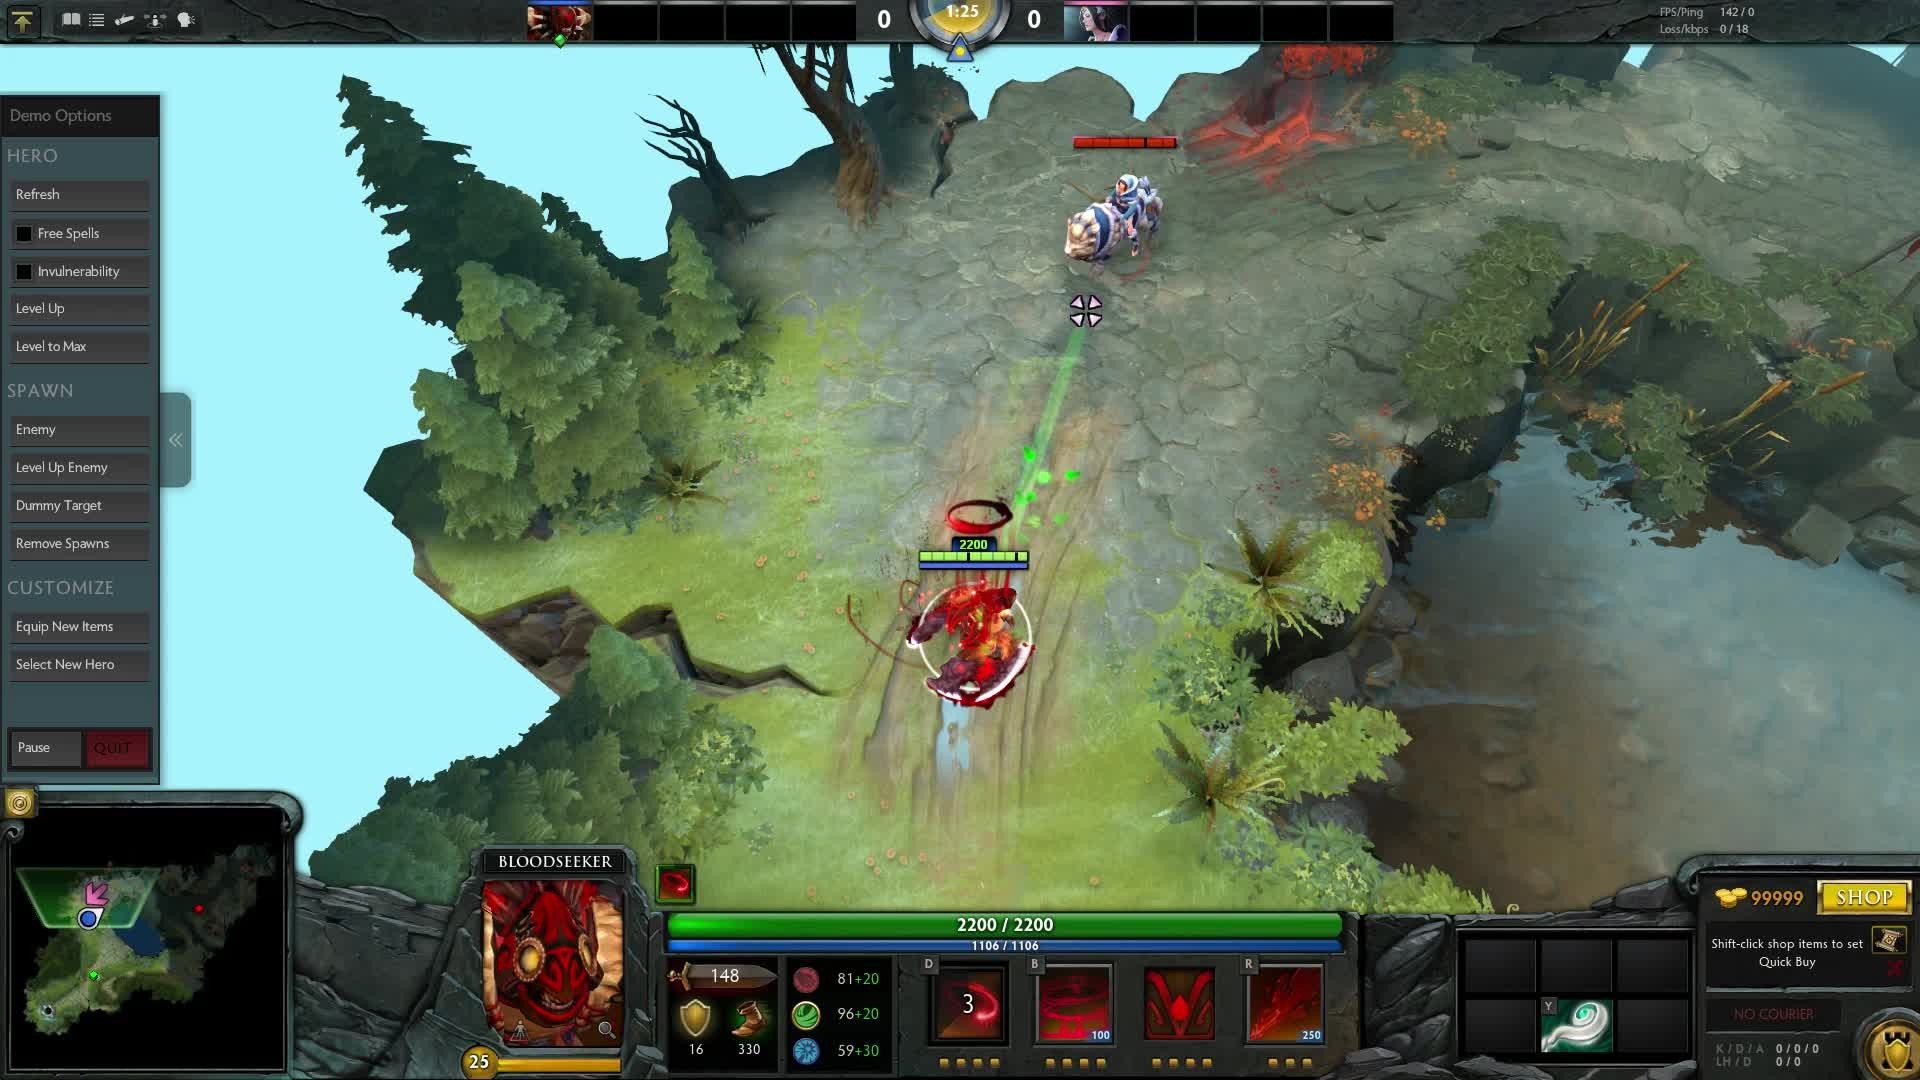 TrueDoTA2, learndota2, Hero Discussion - Bloodseeker (reddit) GIFs